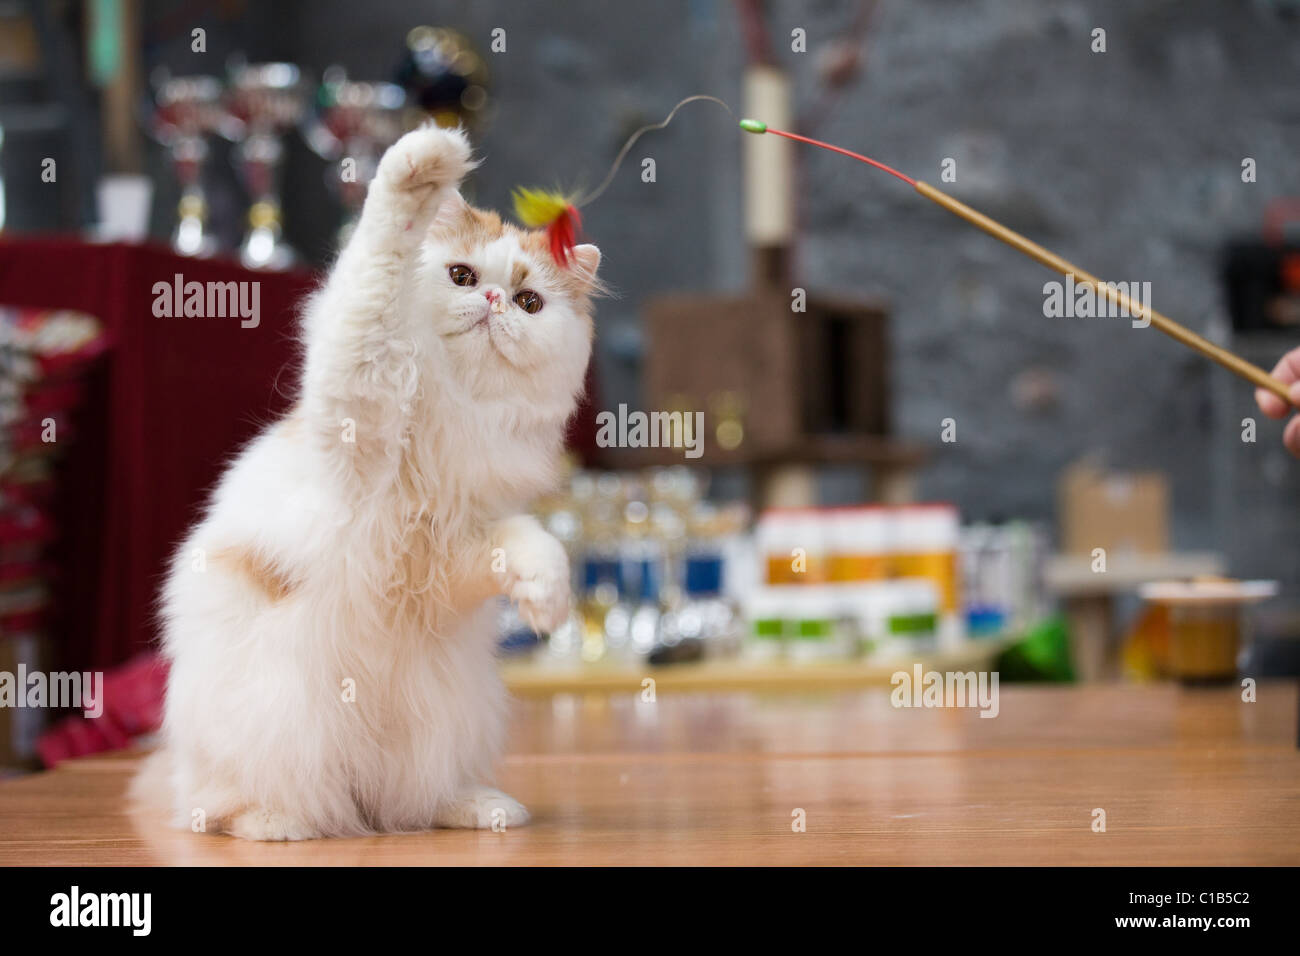 Persian cat champion play with a toy - Stock Image